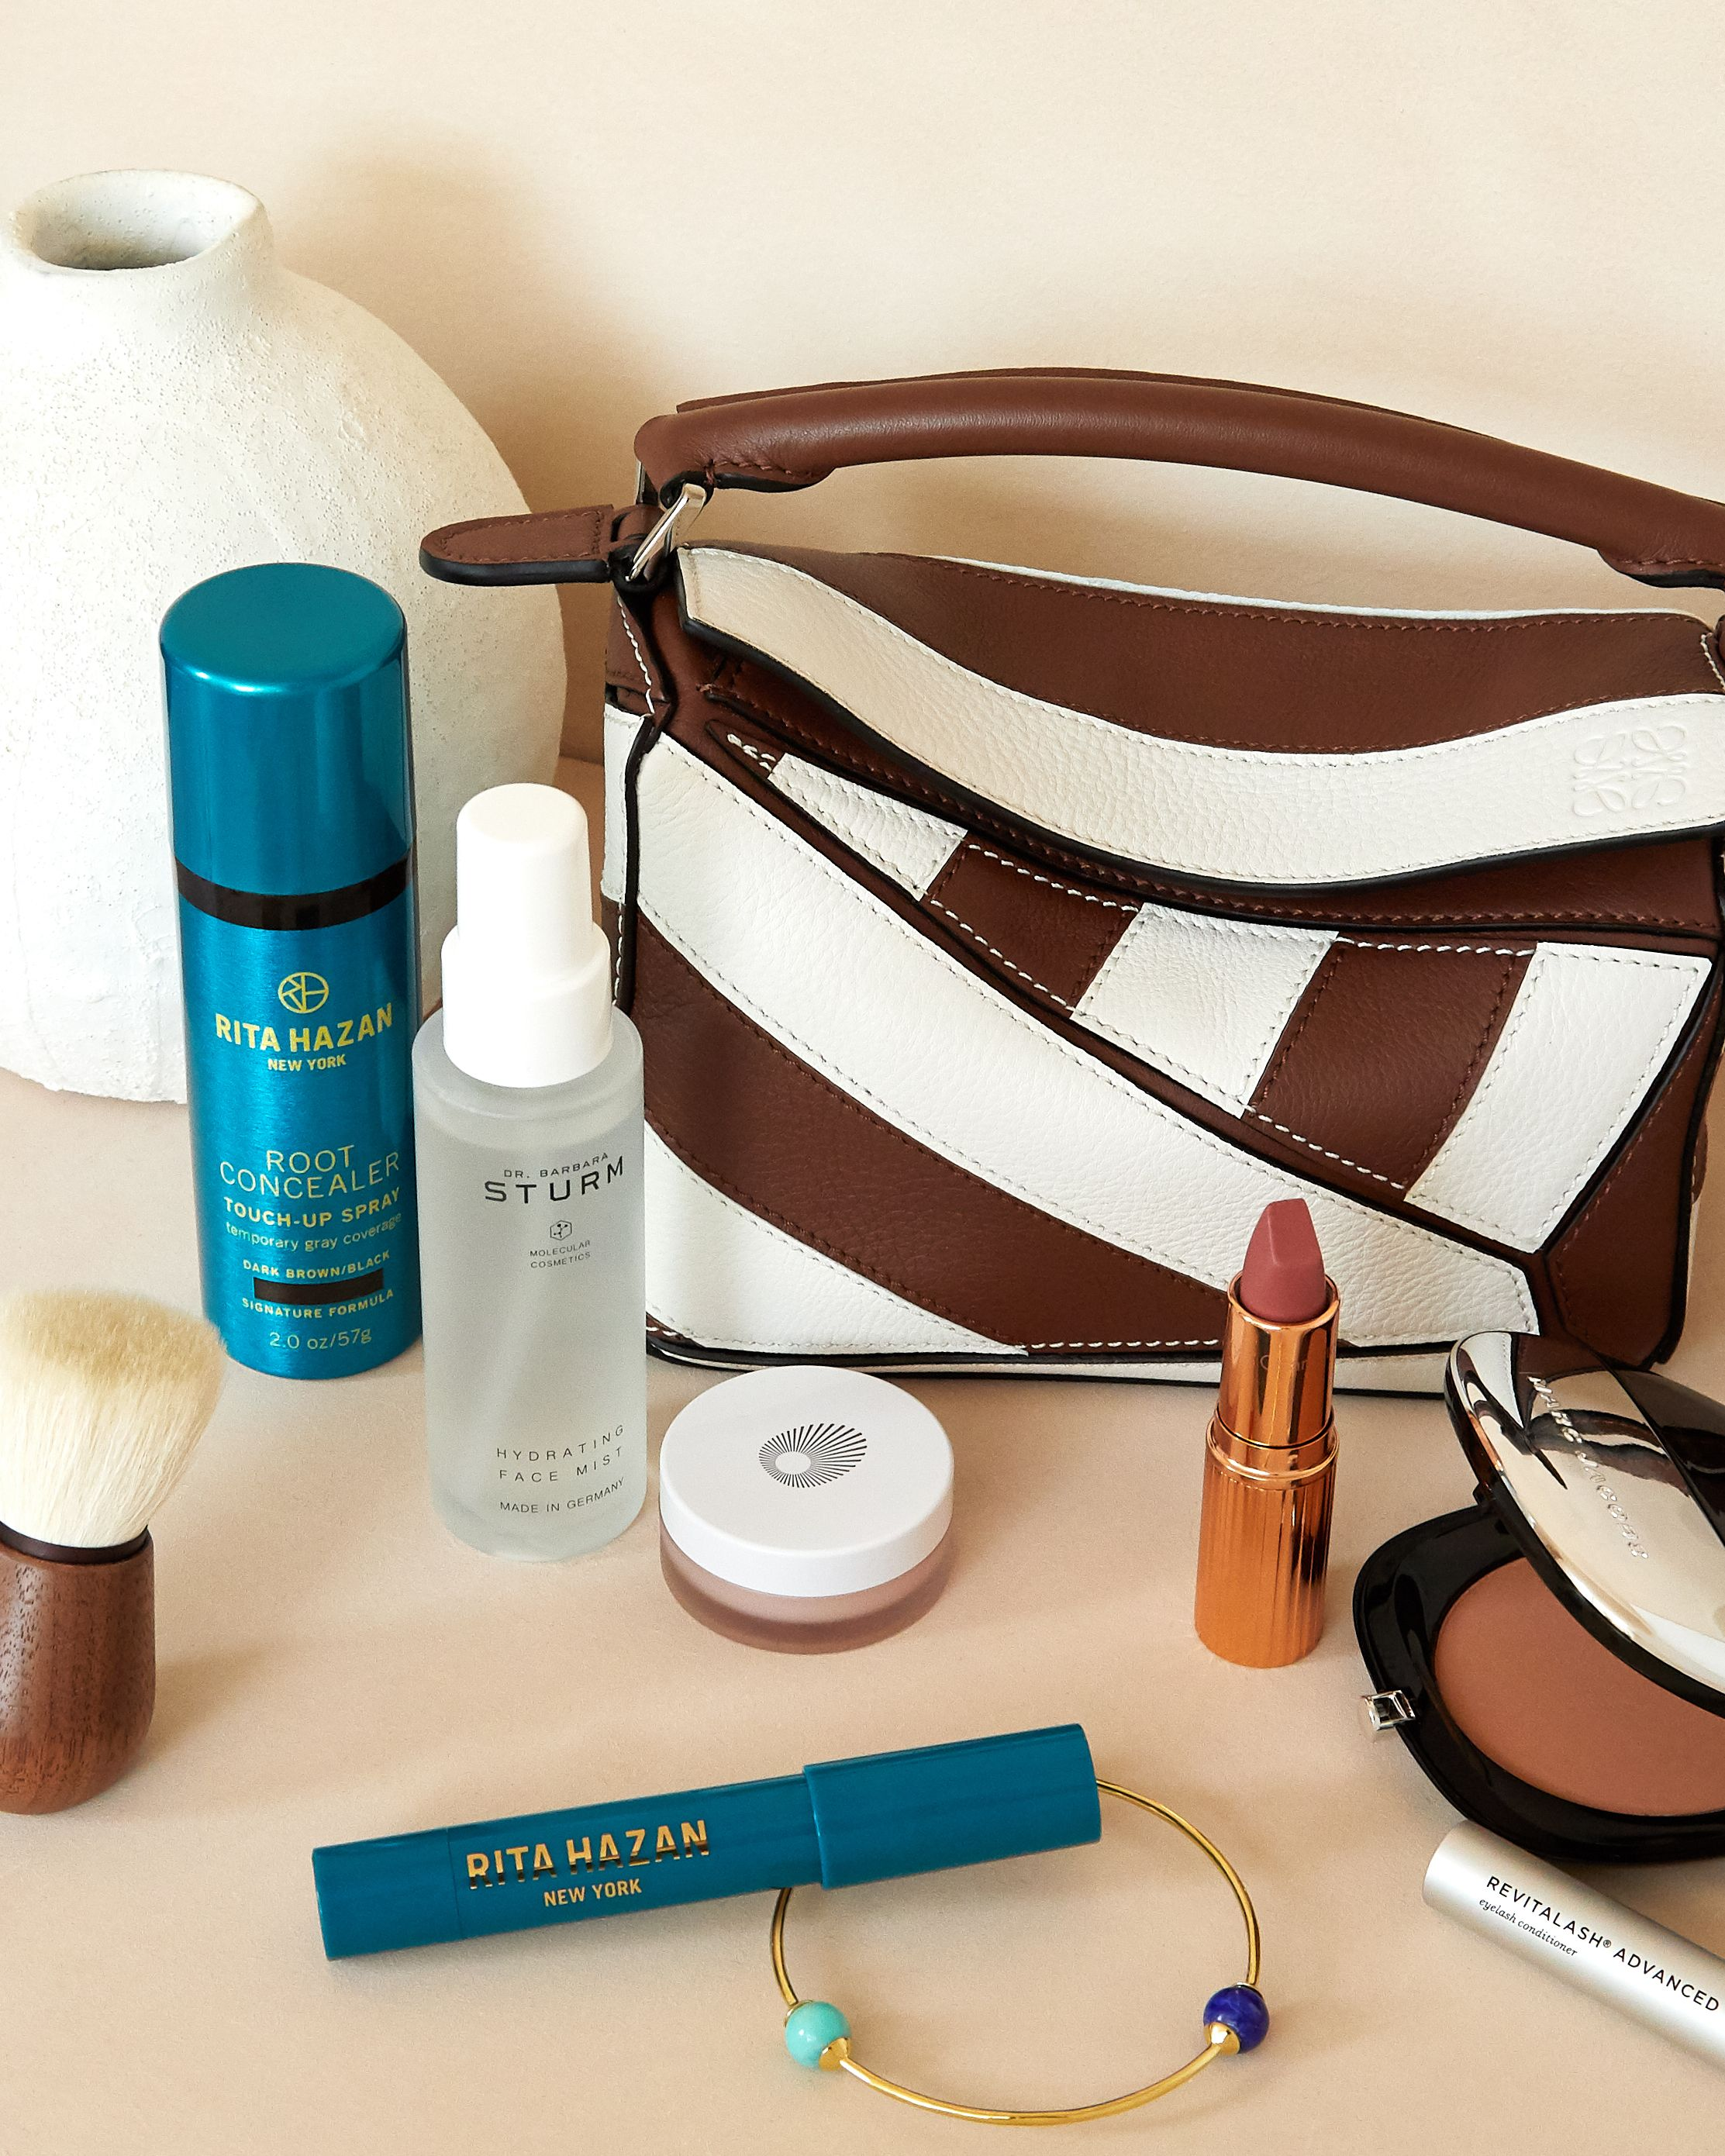 BEAUTY FIX From face mist to lip balm and bronzer, these